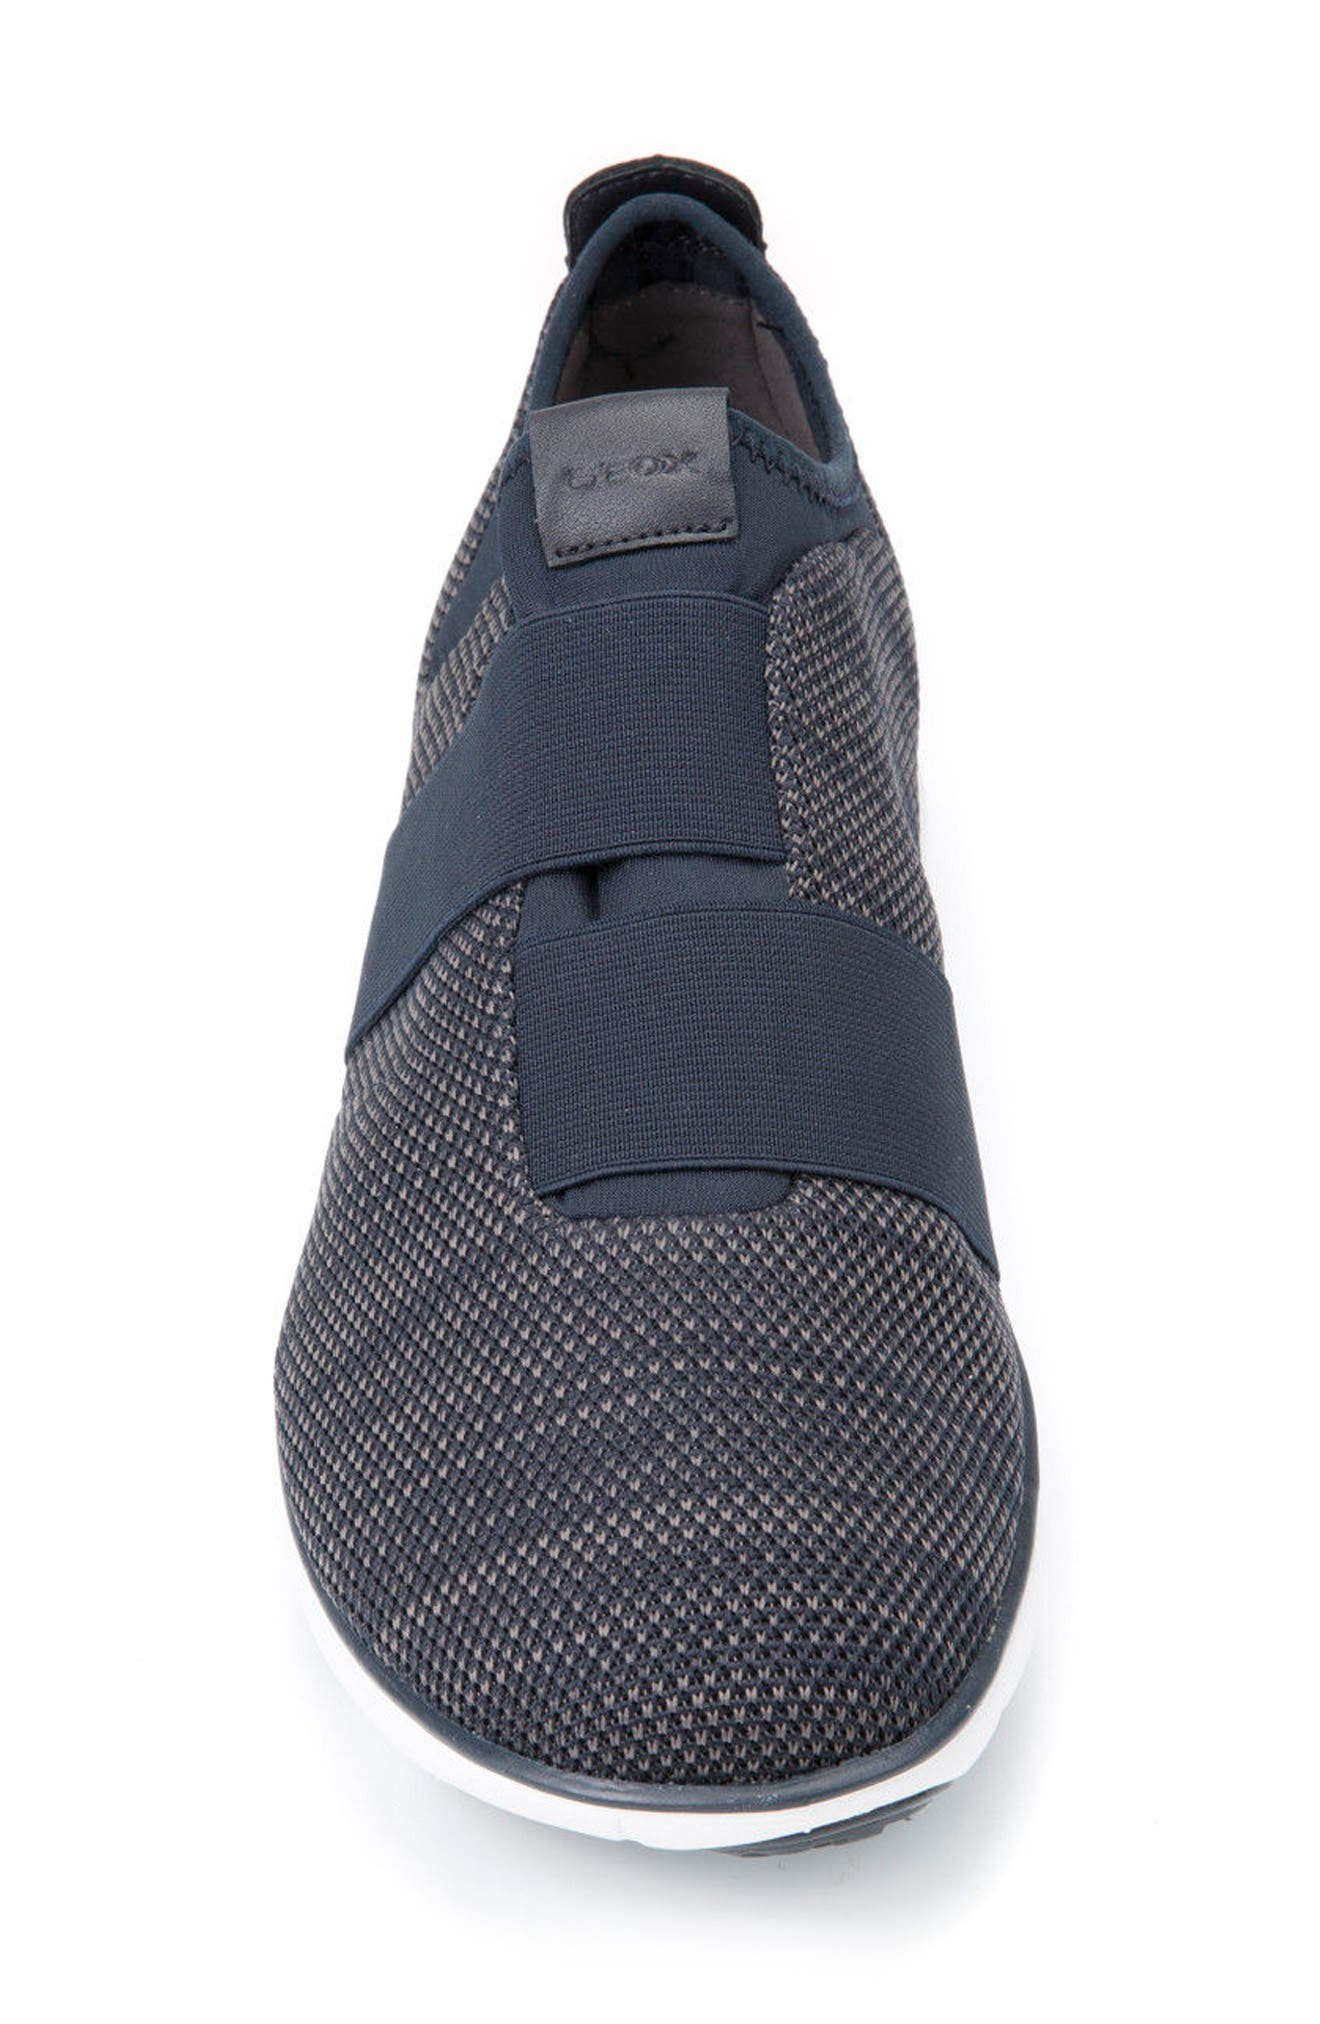 Nebula 45 Banded Slip-On Sneaker,                             Alternate thumbnail 4, color,                             Navy